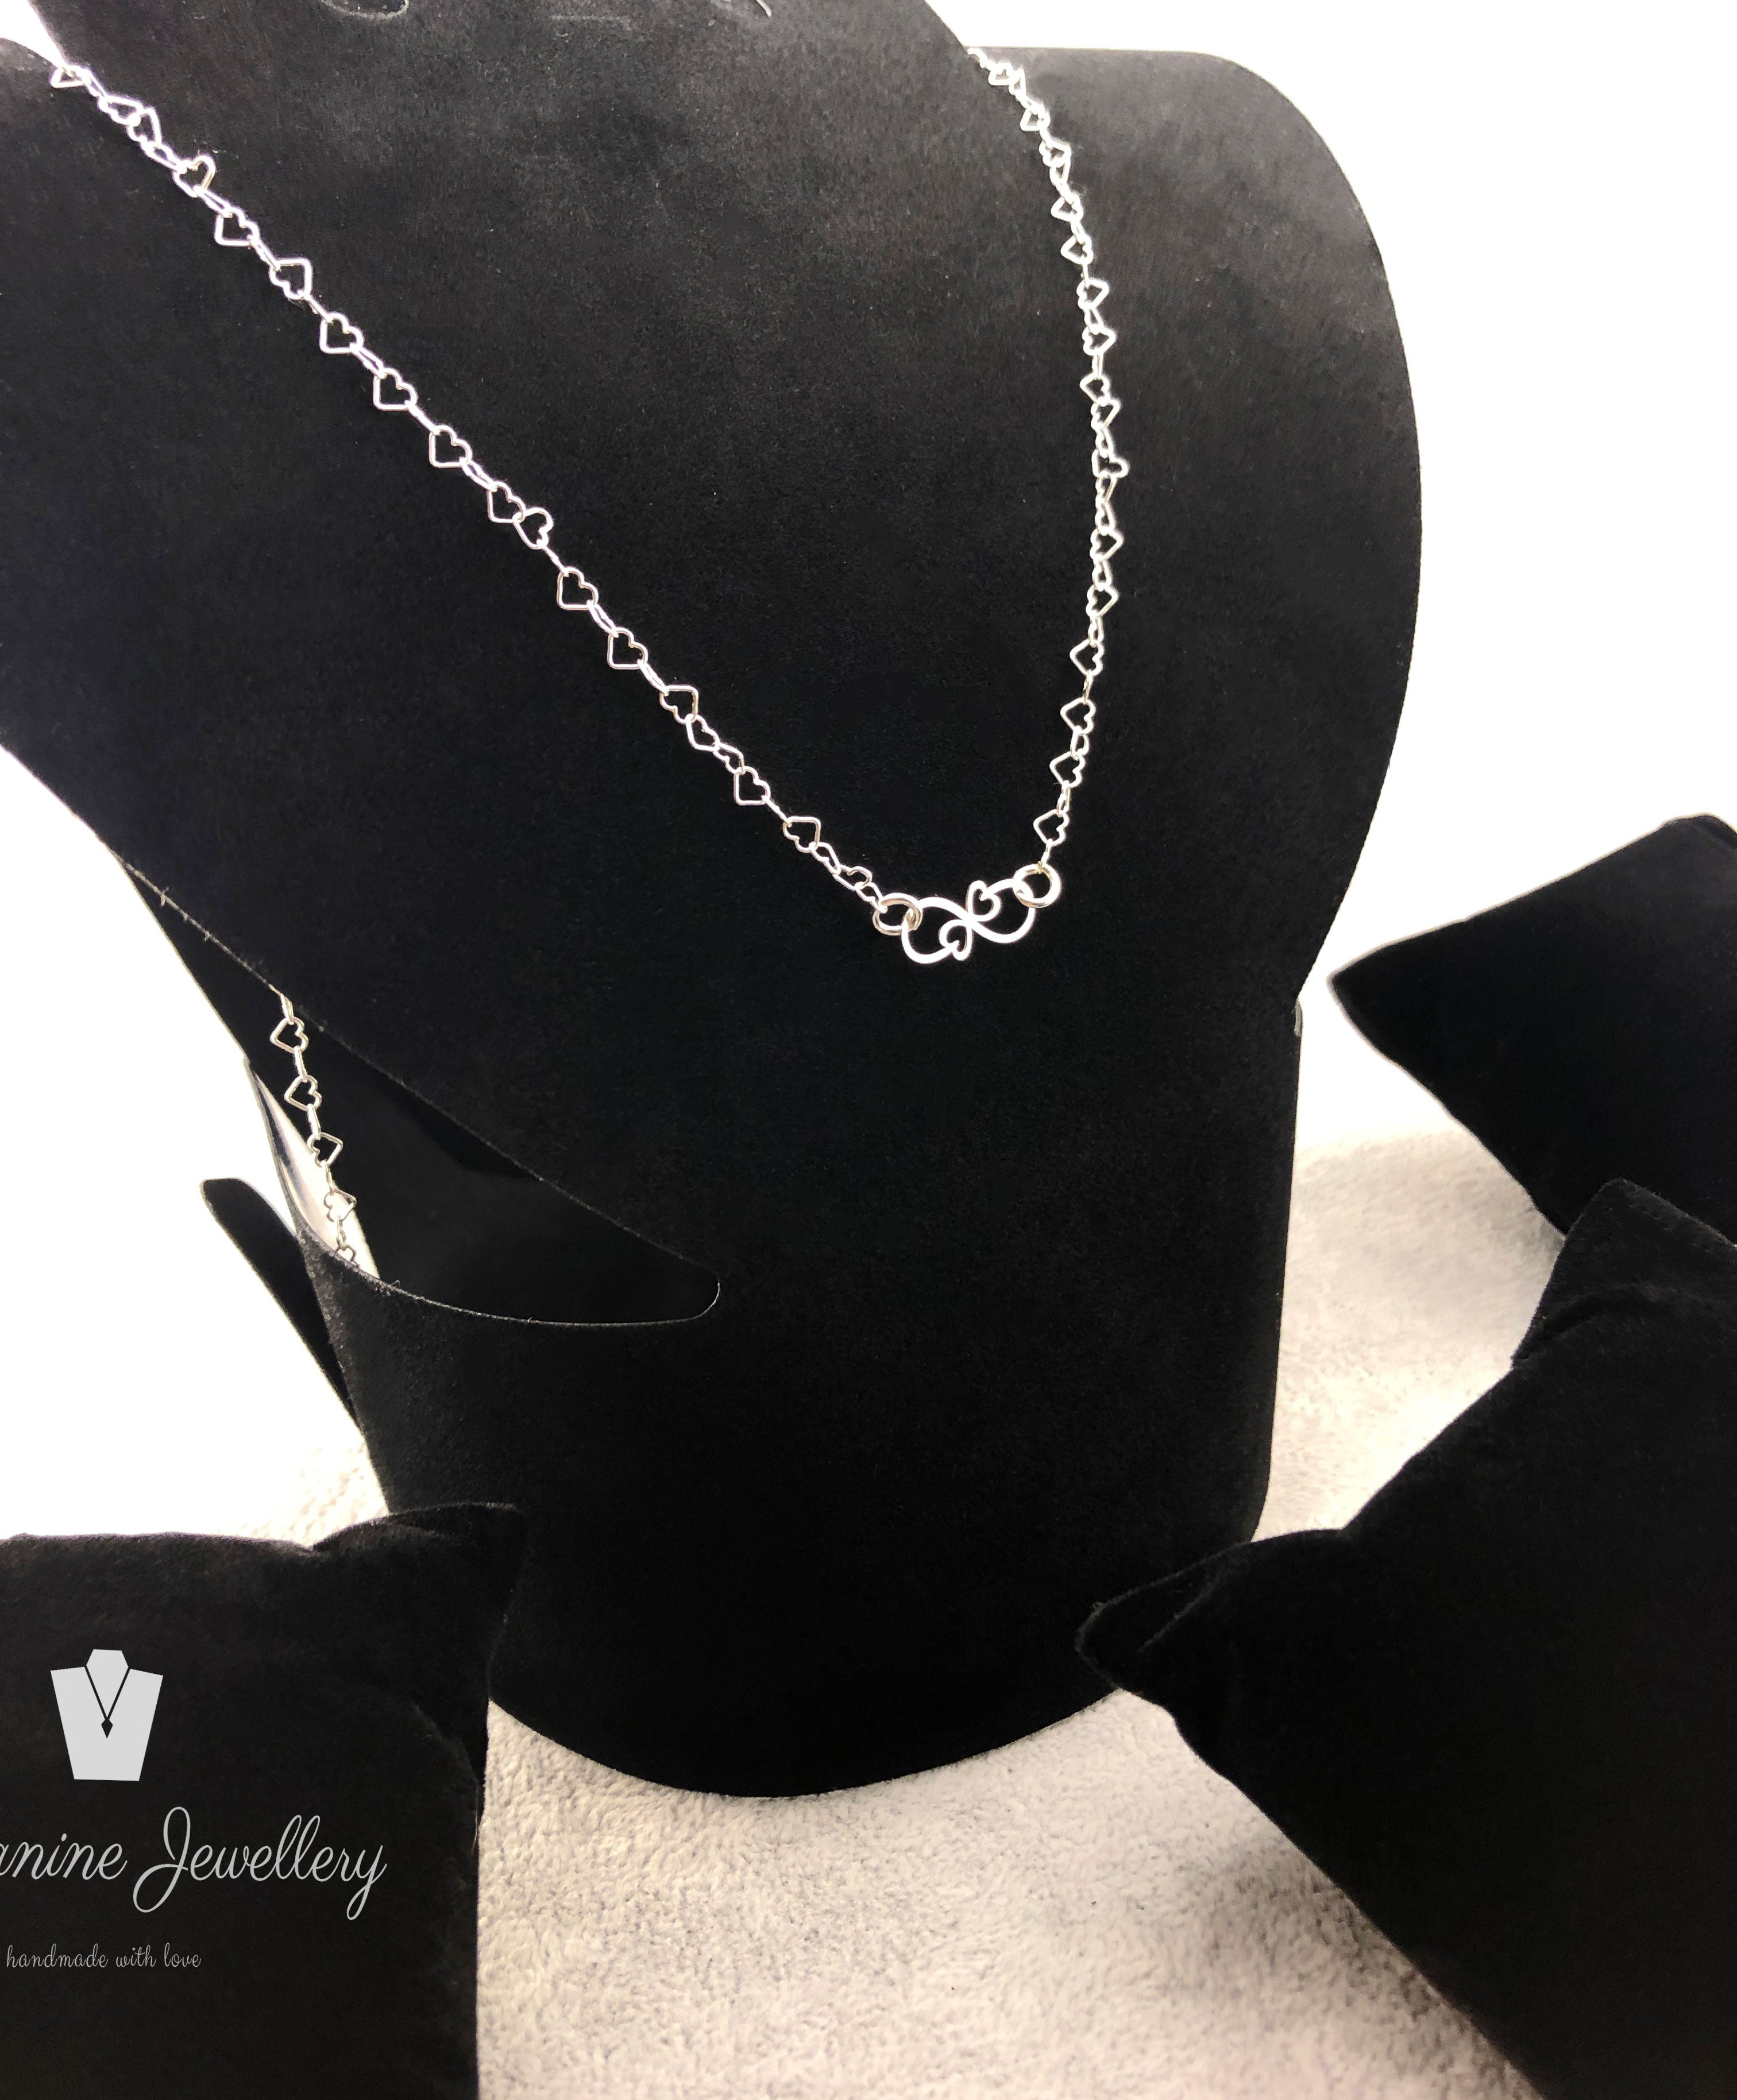 Set heart & Infinity - By Janine Jewellery